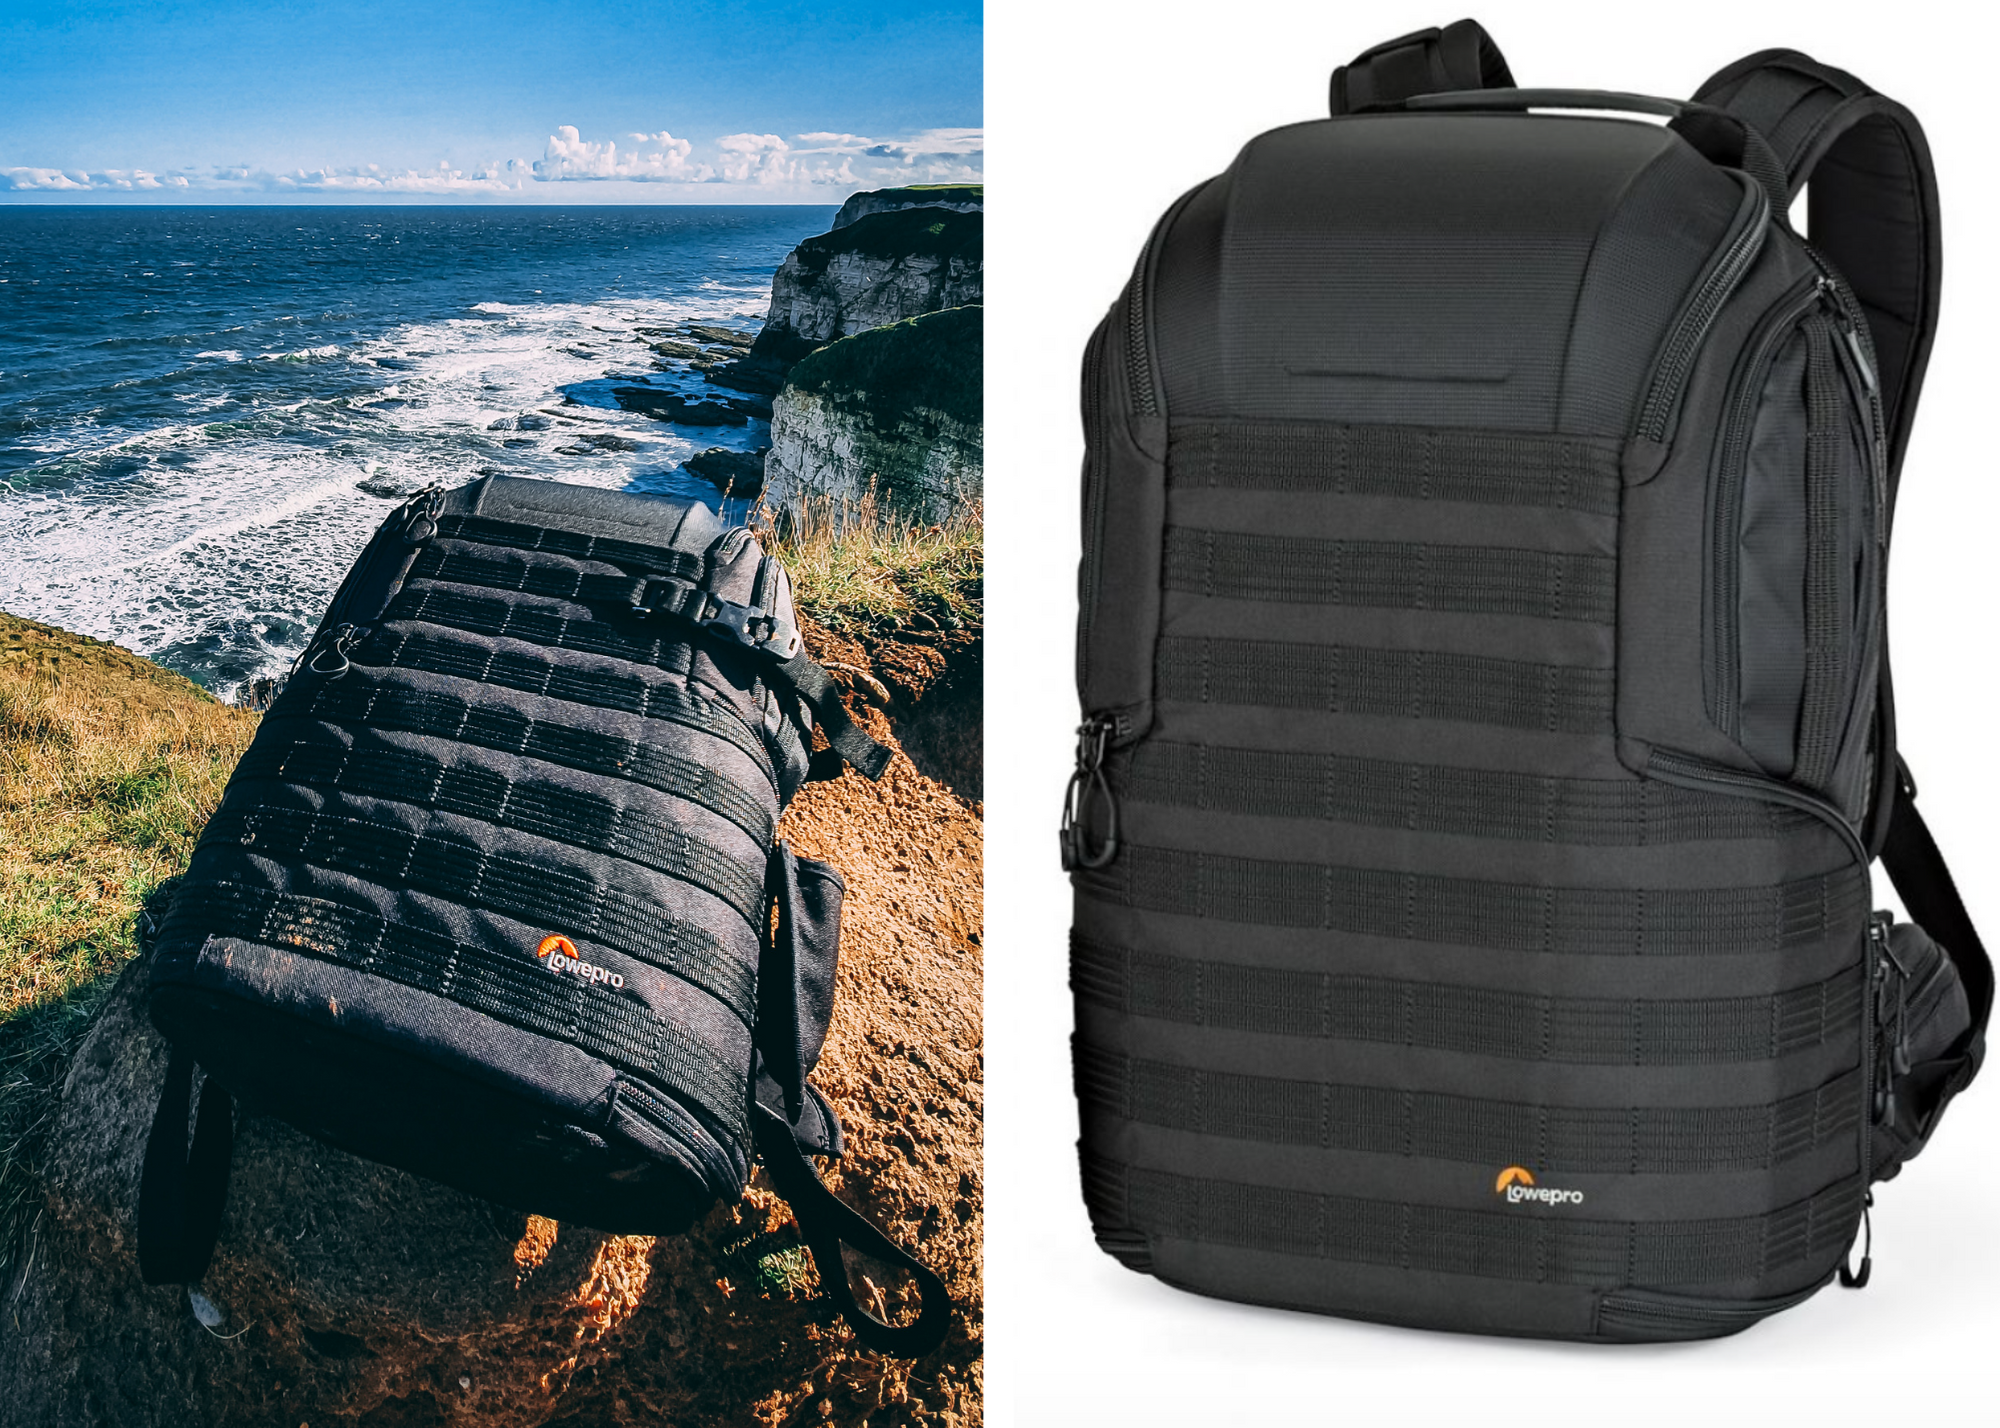 Lowepro Protactic BP 450 AW II camera bag for winter photography